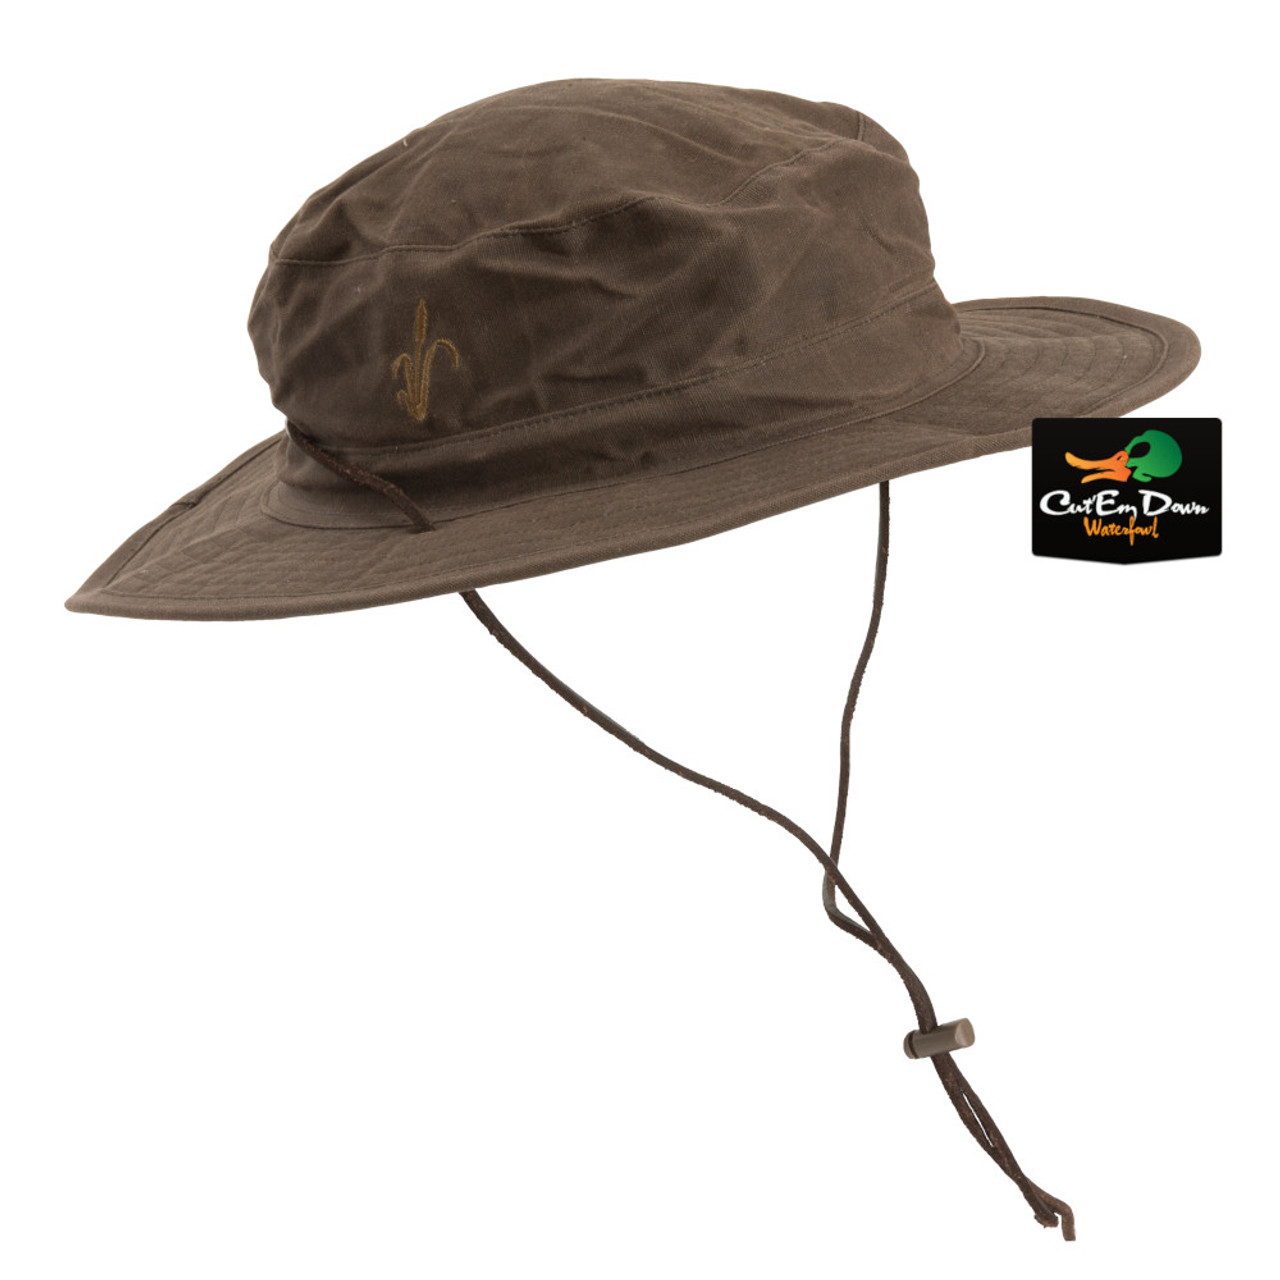 8d43d3c41 AVERY OUTDOORS GHG HERITAGE BUCKET BOONIE HAT